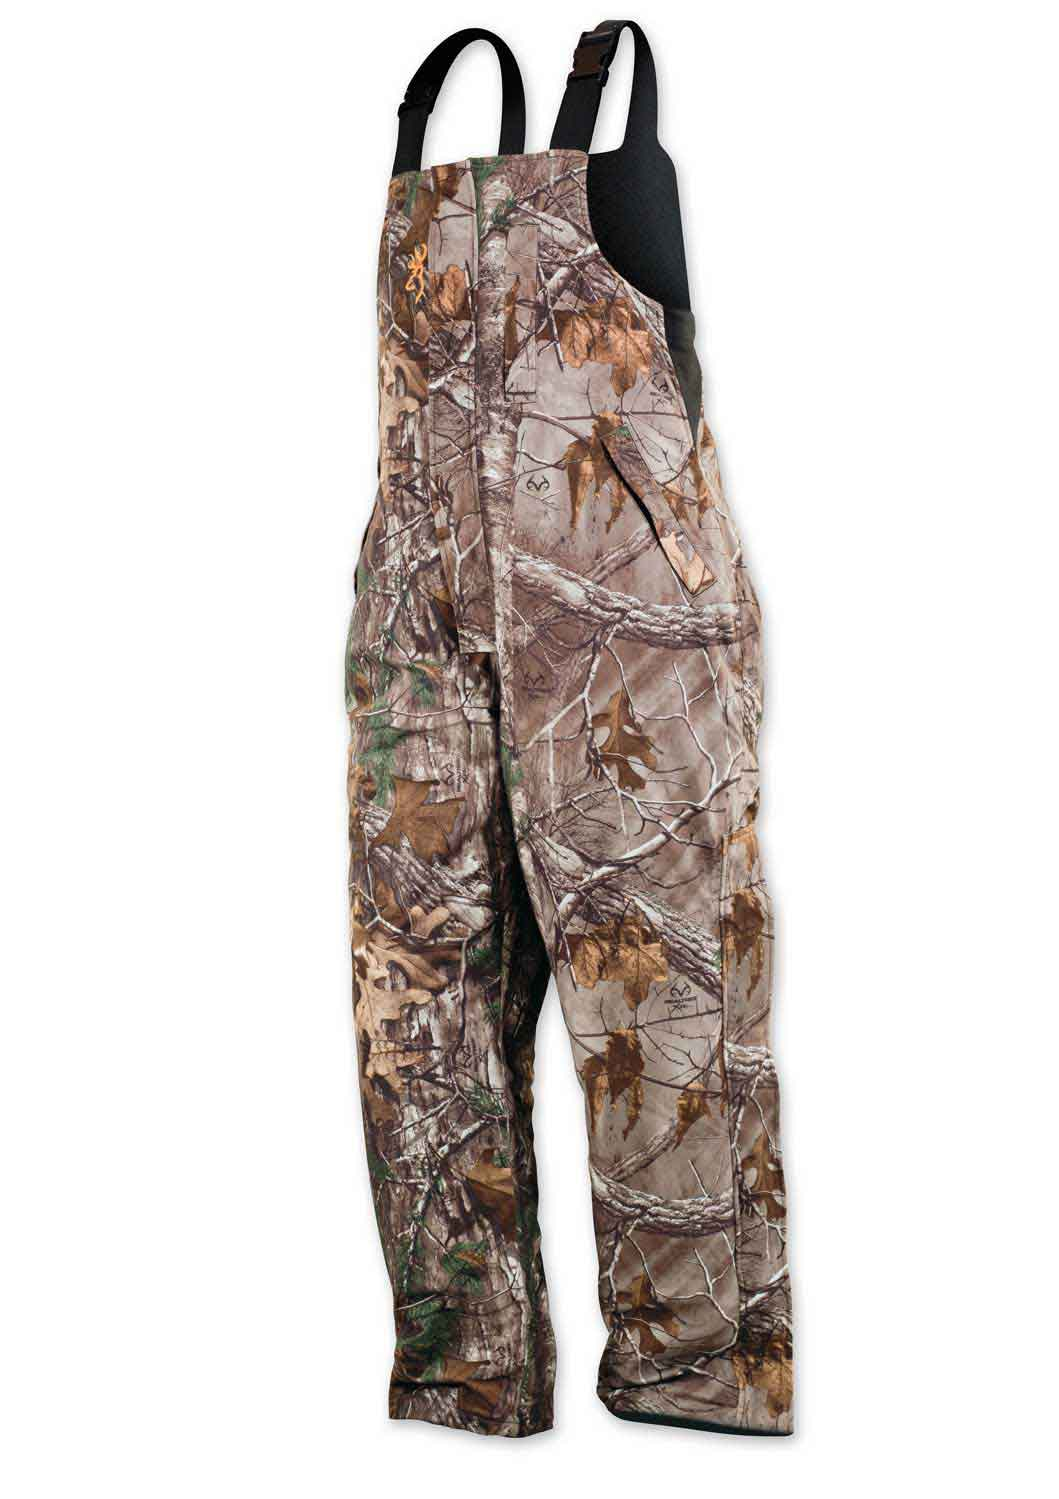 Browning Wasatch Junior Insulated Rain Bib in Realtree Xtra Camo_1.jpg